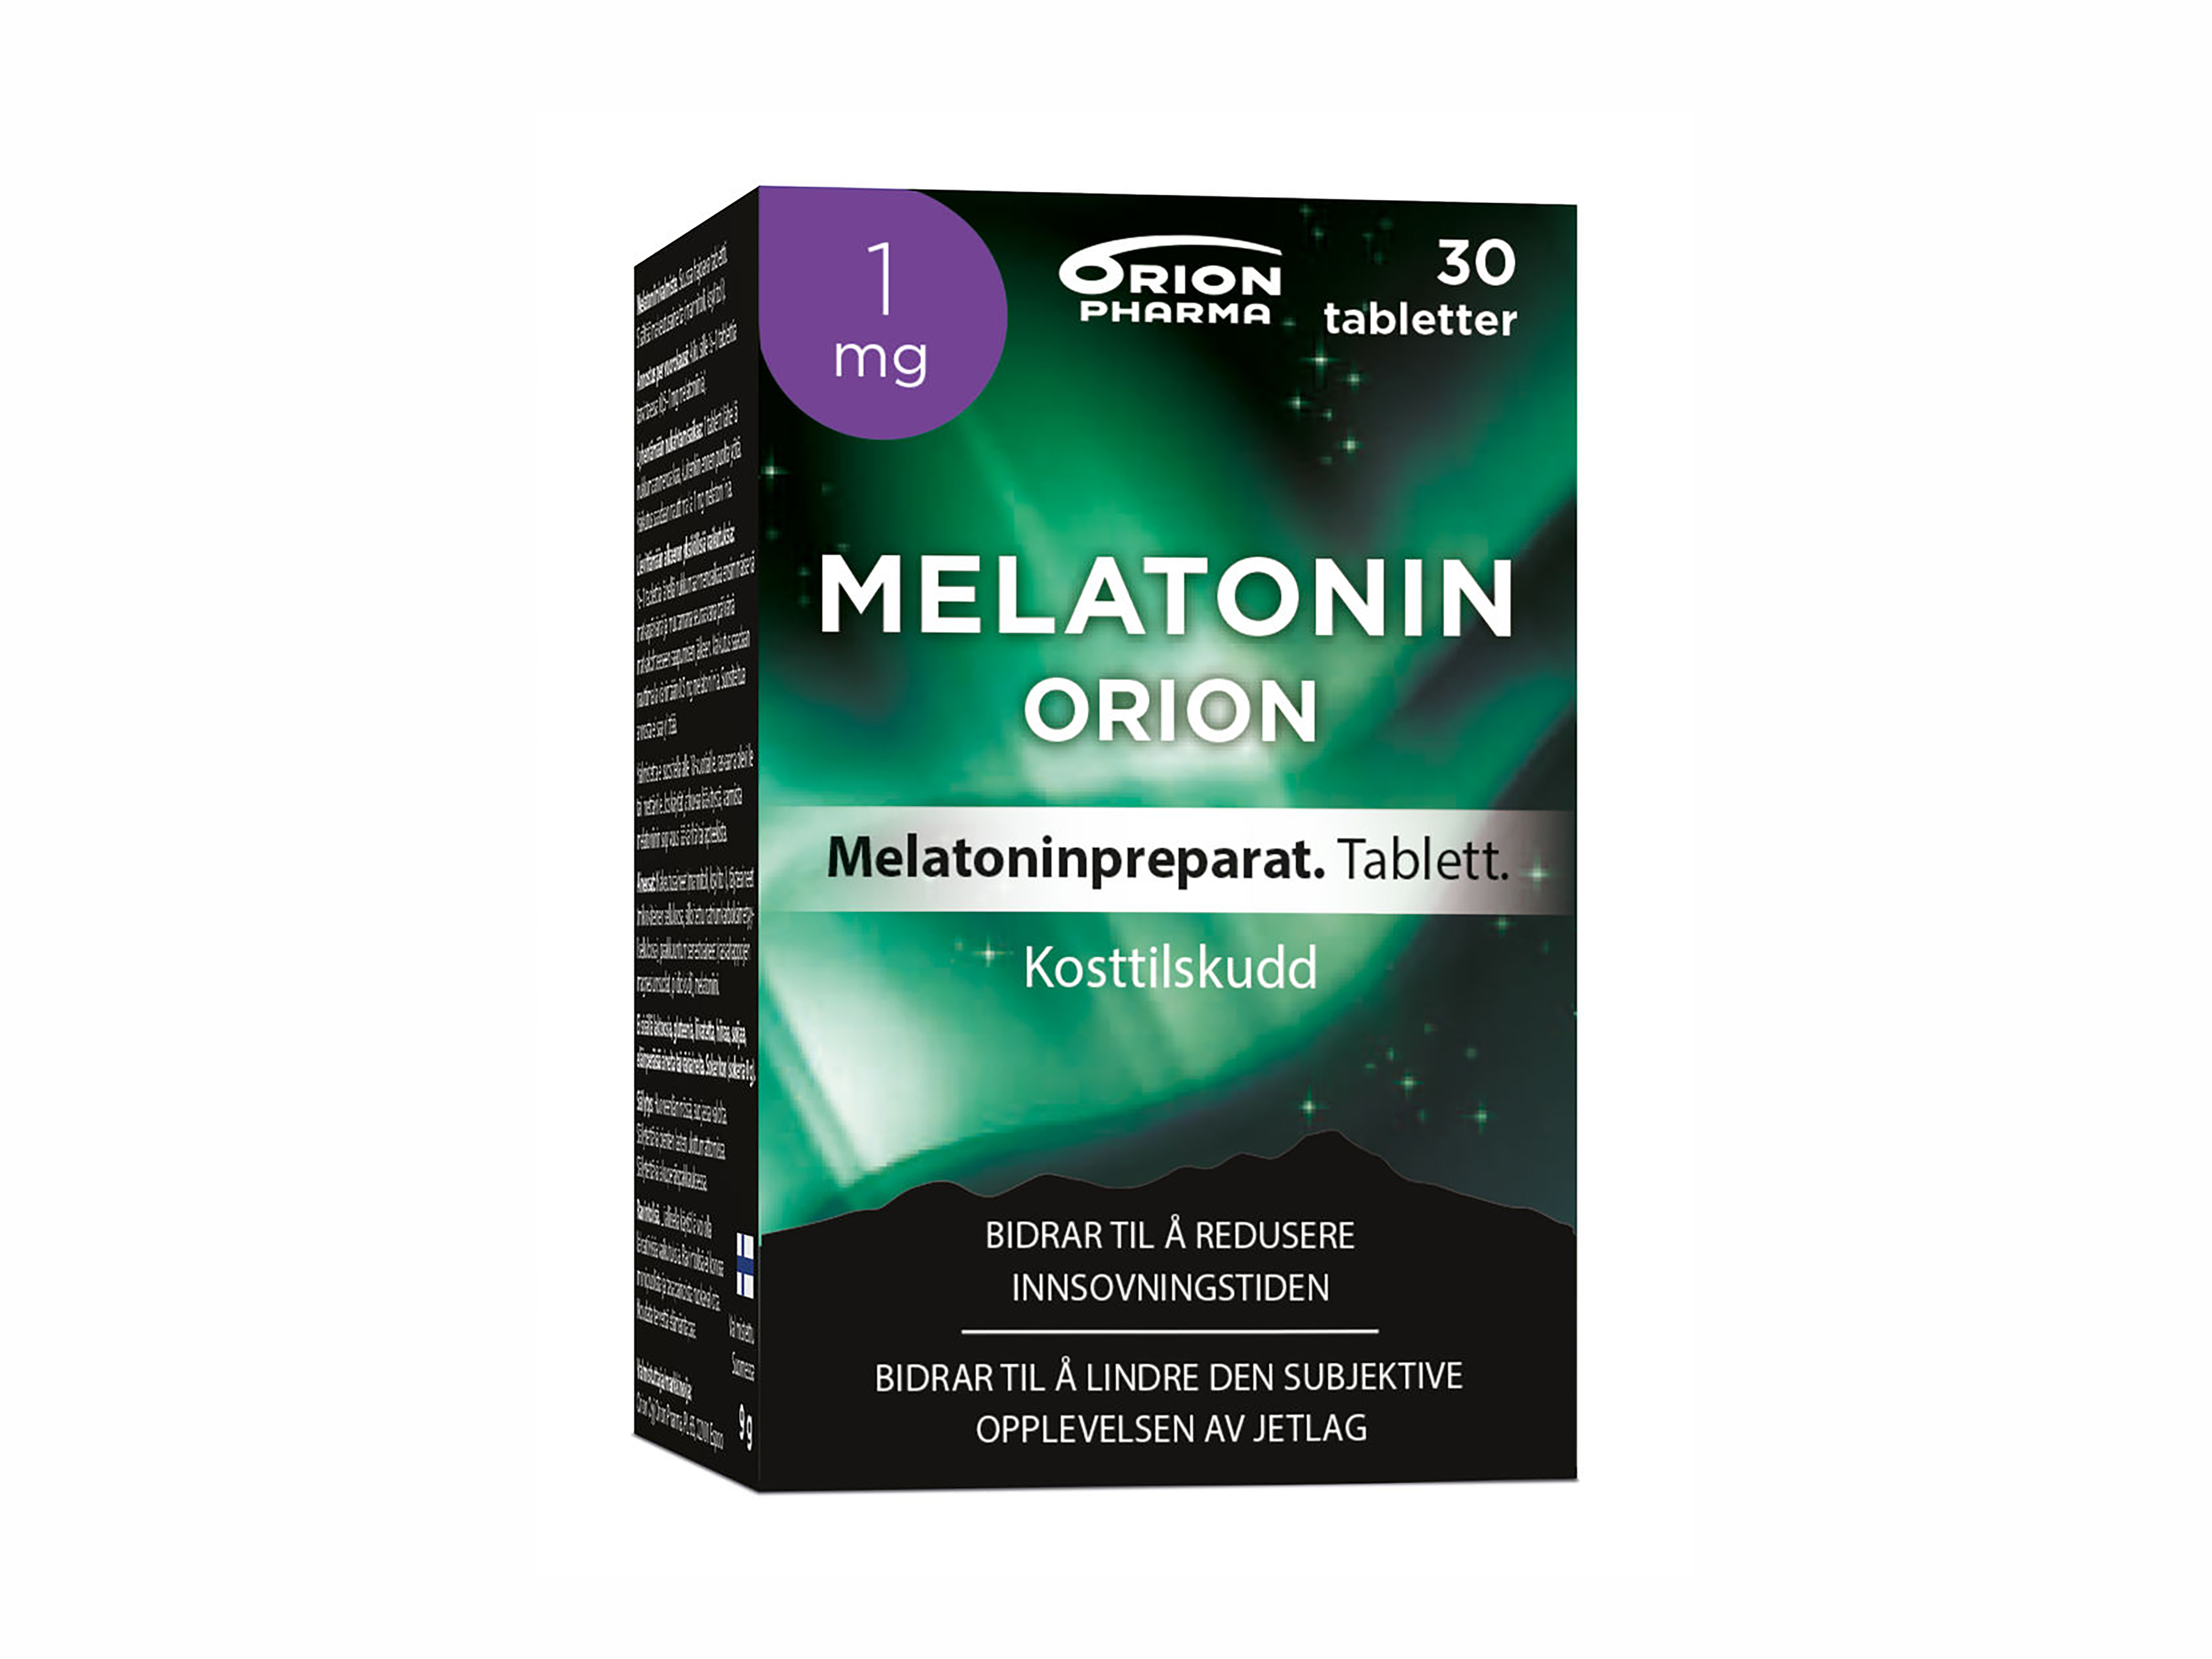 Orion Melatonin Tablett 1mg, 30 stk